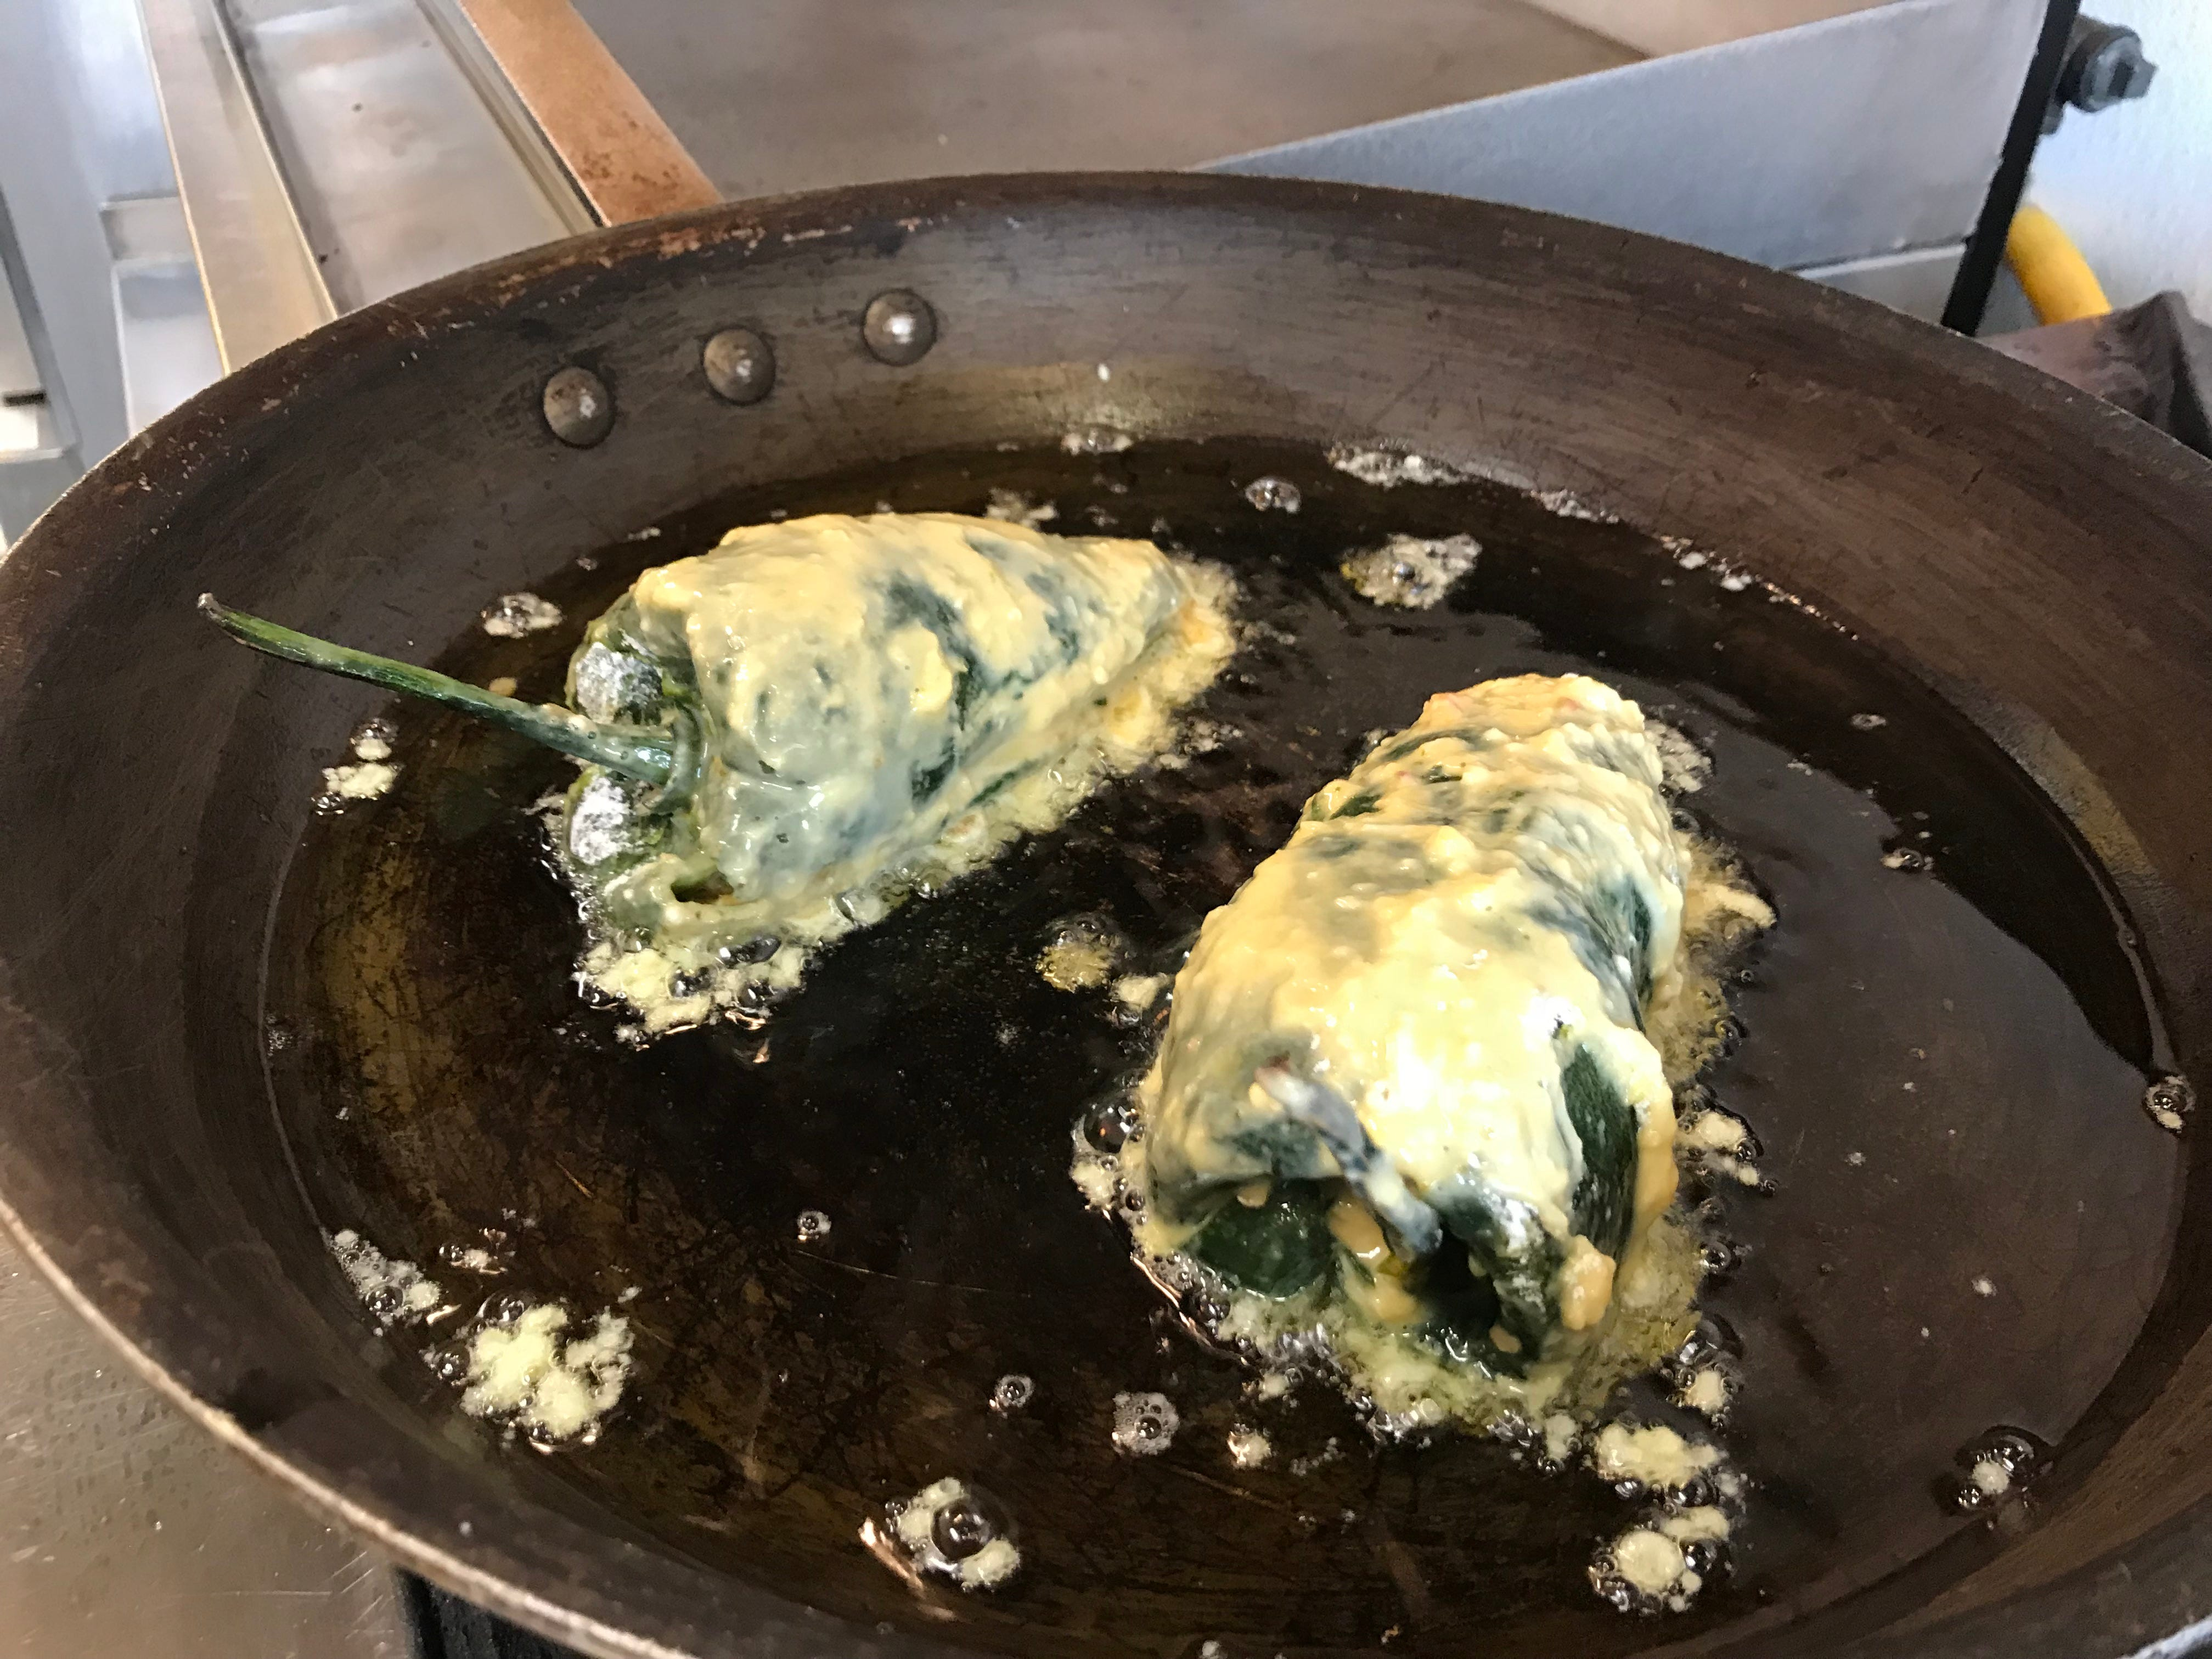 Chiles rellenos cook at Neno's.